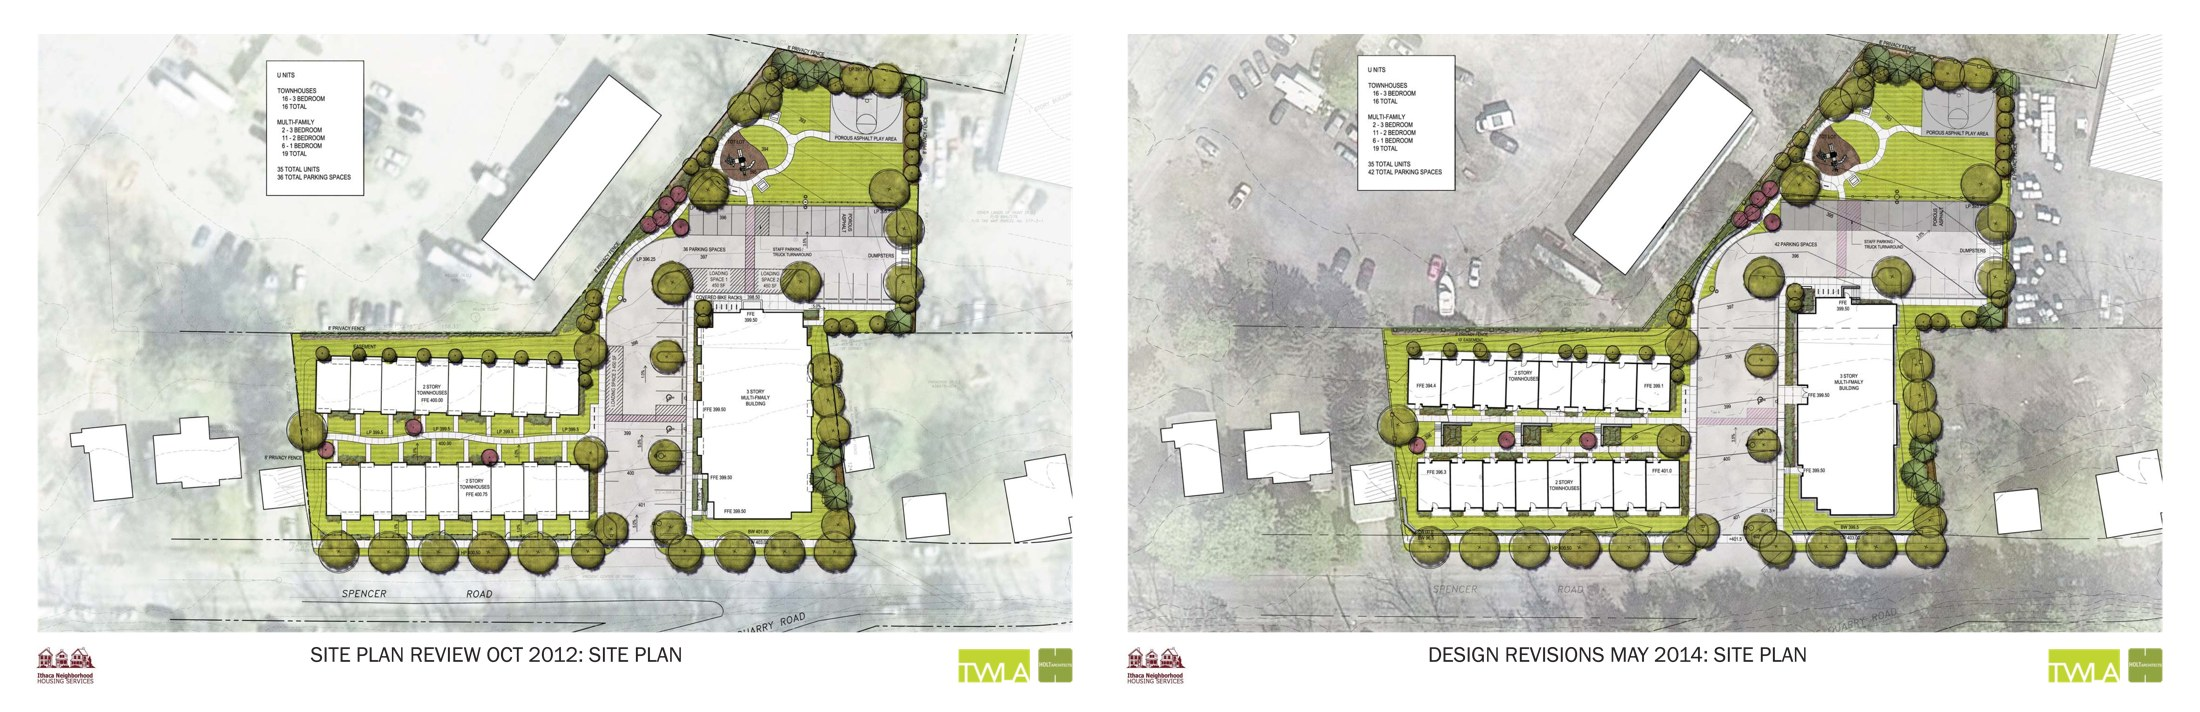 Stone Quarry Apartments - Site Plan Updates - 05-22-14 (dragged) 4